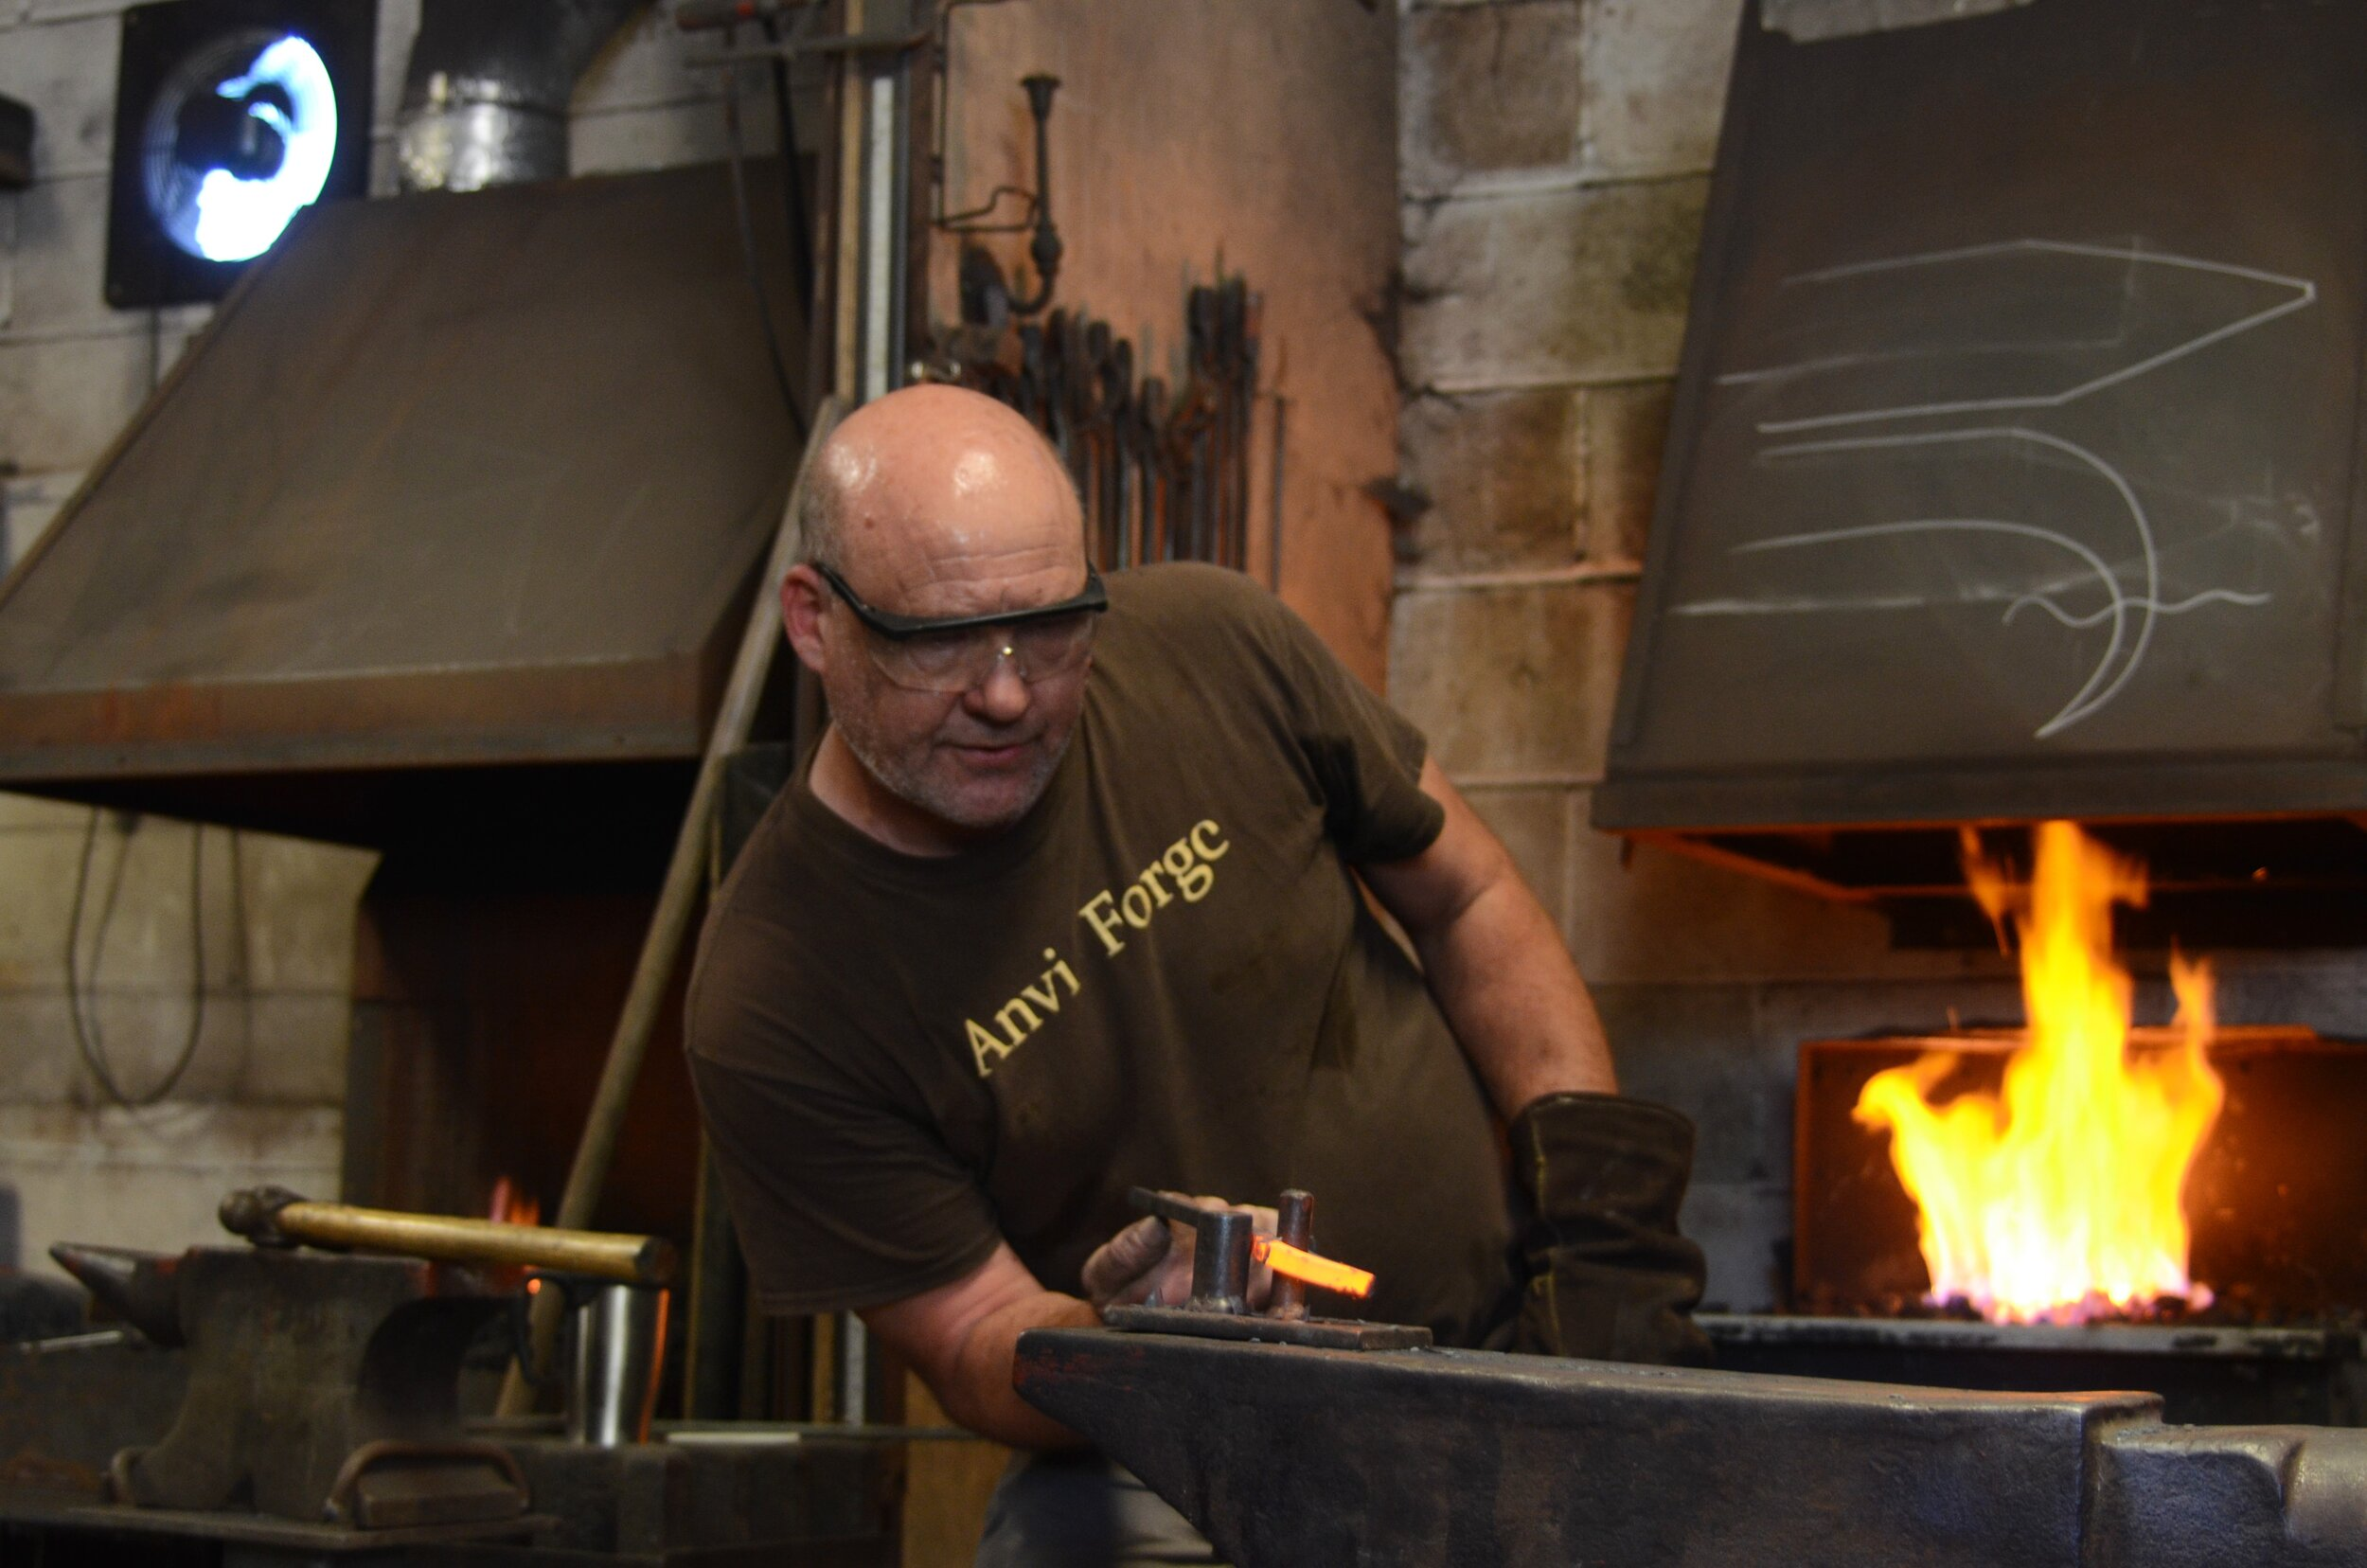 Spencer - blacksmith - Spencer joined John a number of years ago and has wealth of knowledge in not only blacksmithing and bladesmithing but site installations and problem solving for a variety of situations that arise when installing metalwork.